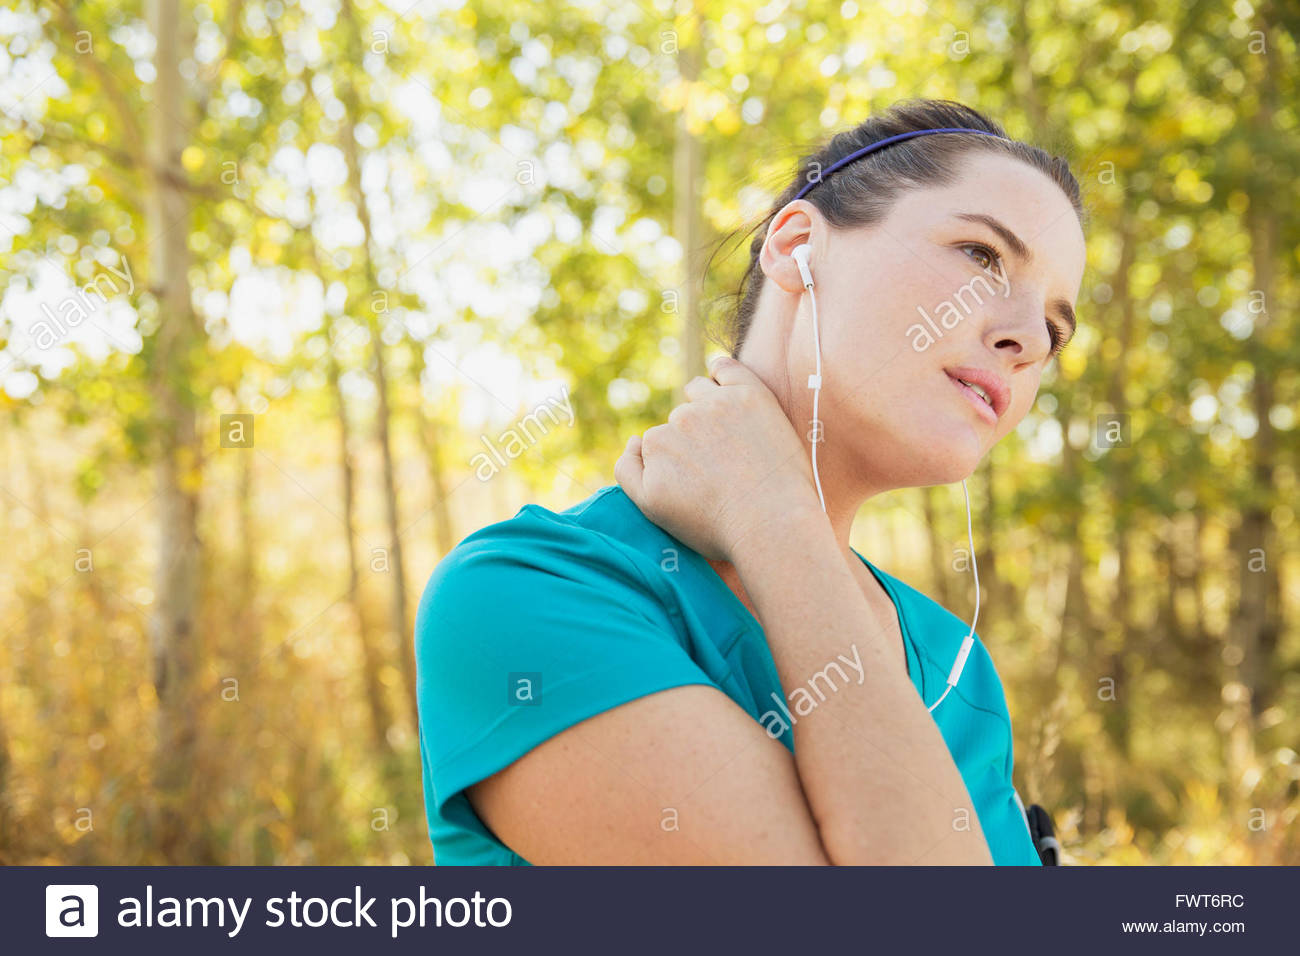 Runner with hand on her neck outdoors. - Stock Image